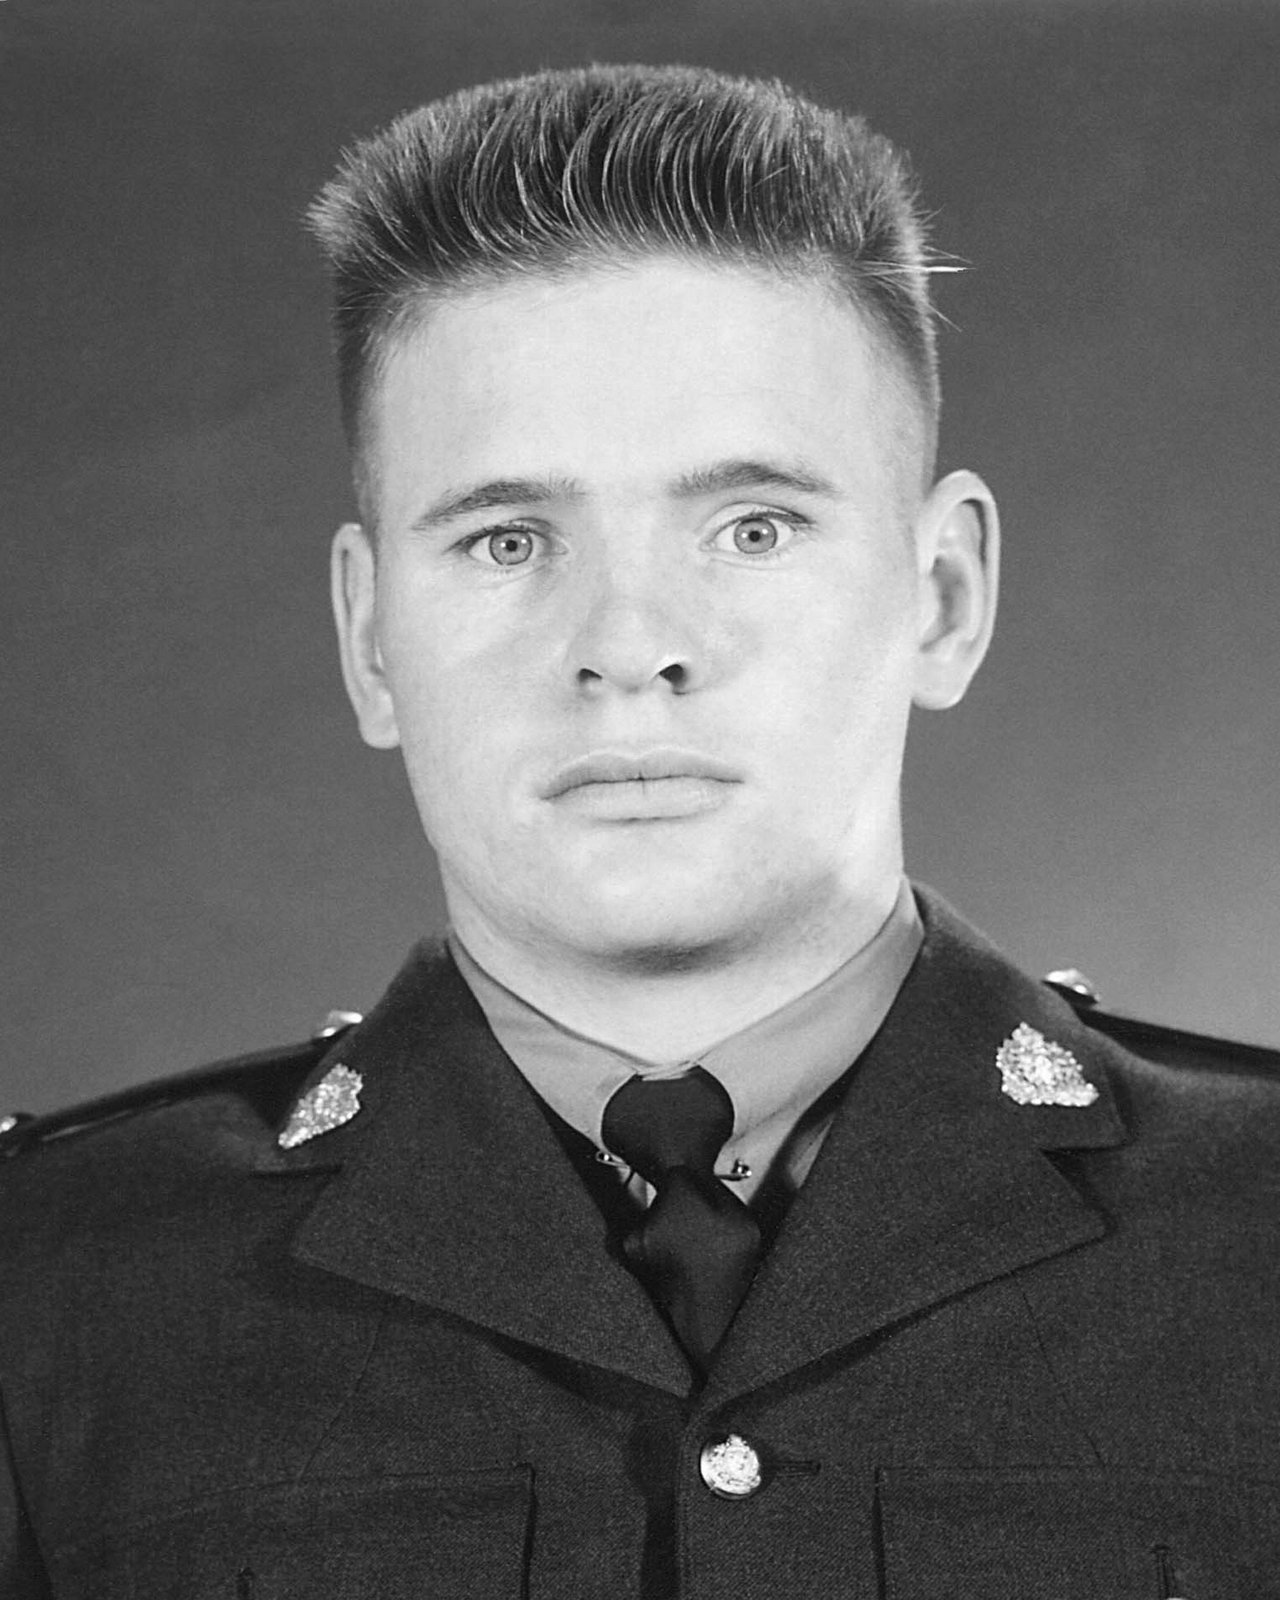 Constable Carl Lennart Sundell– © Her Majesty the Queen in Right of Canada as represented by the Royal Canadian Mounted Police